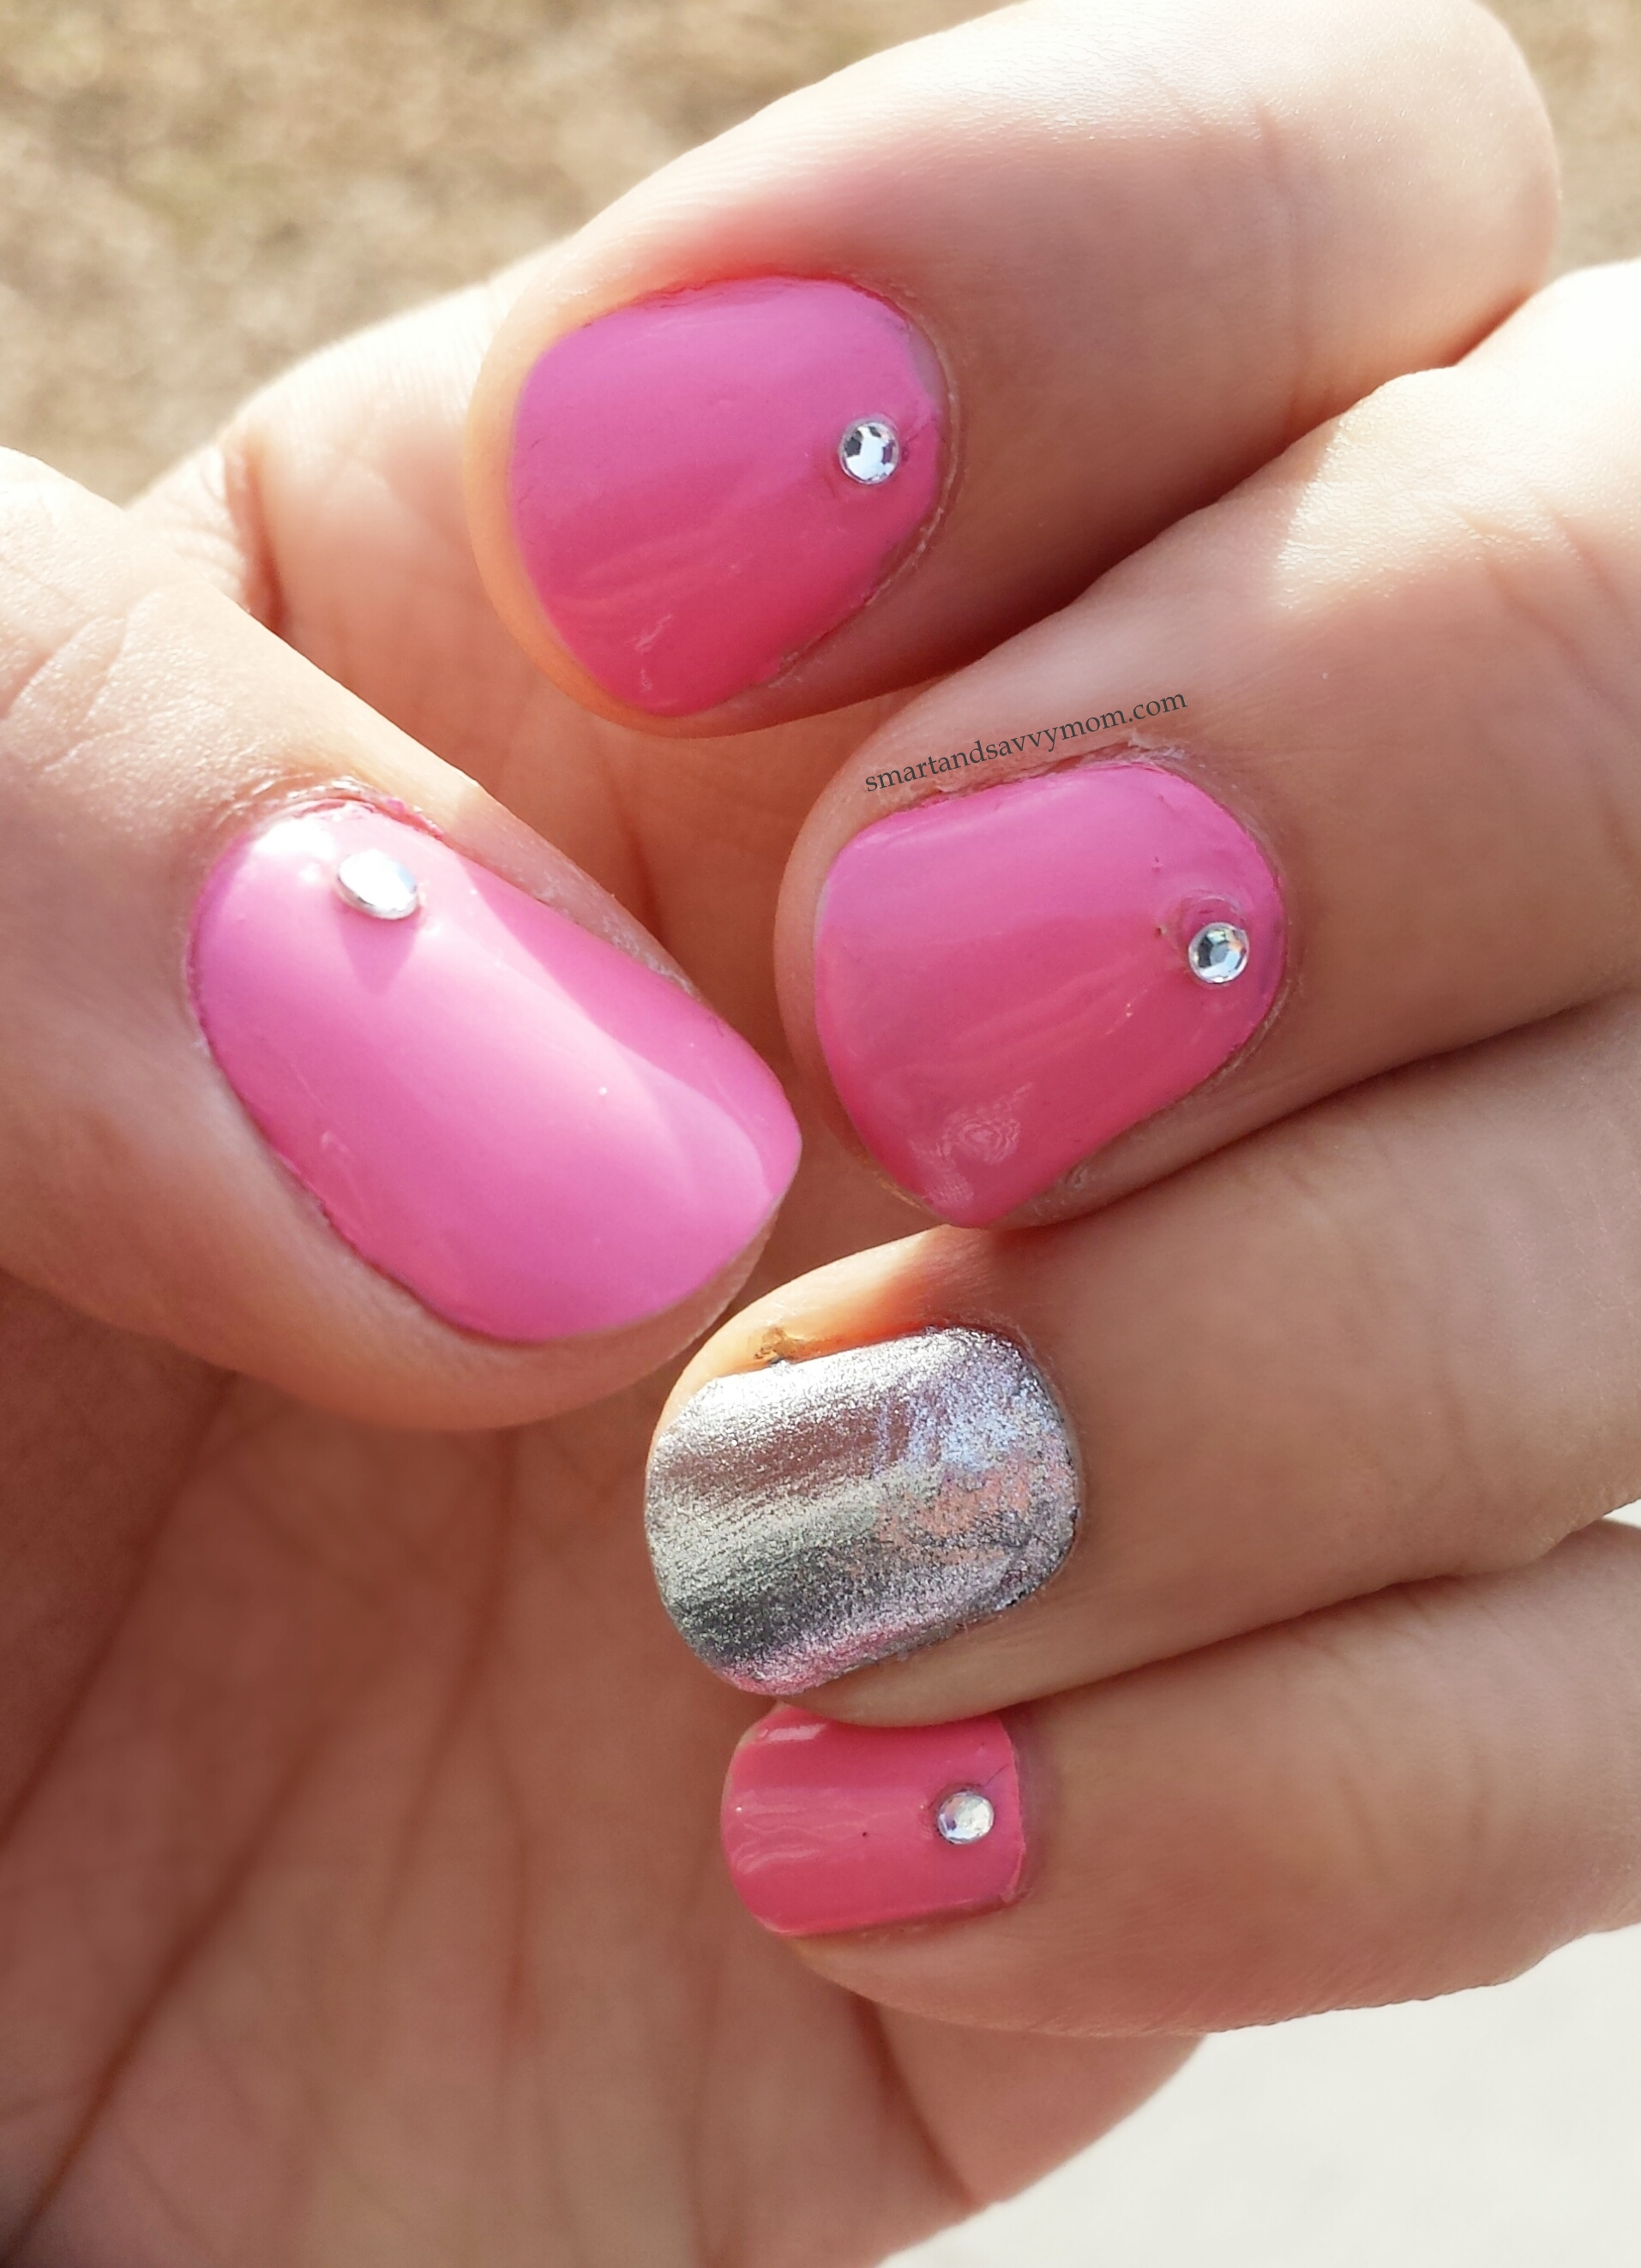 jeweled manicure | Smart and Savvy Mom